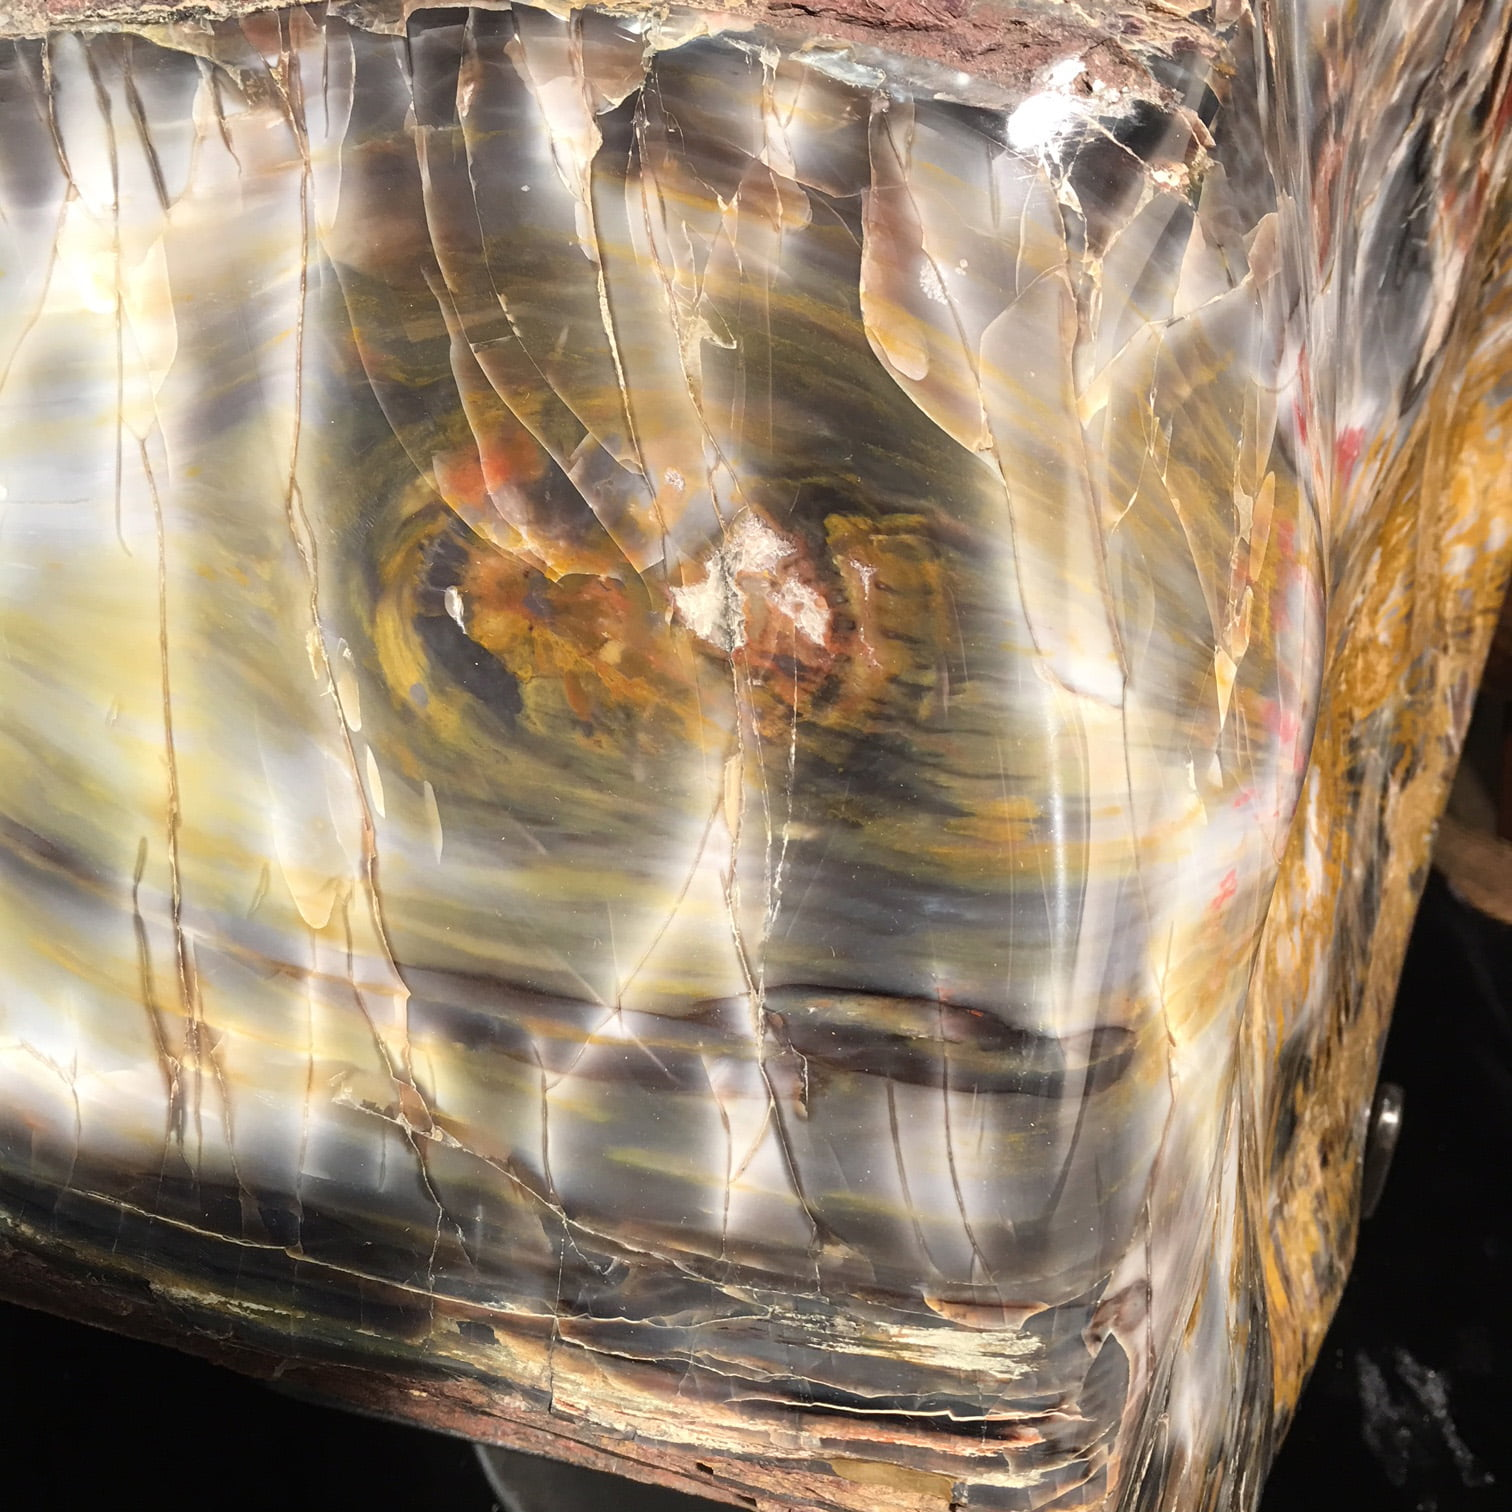 #A6 Museum Arizona Petrified Wood Sculpture Hand Polished With Yellow Starburst & Knot - 120 Lbs